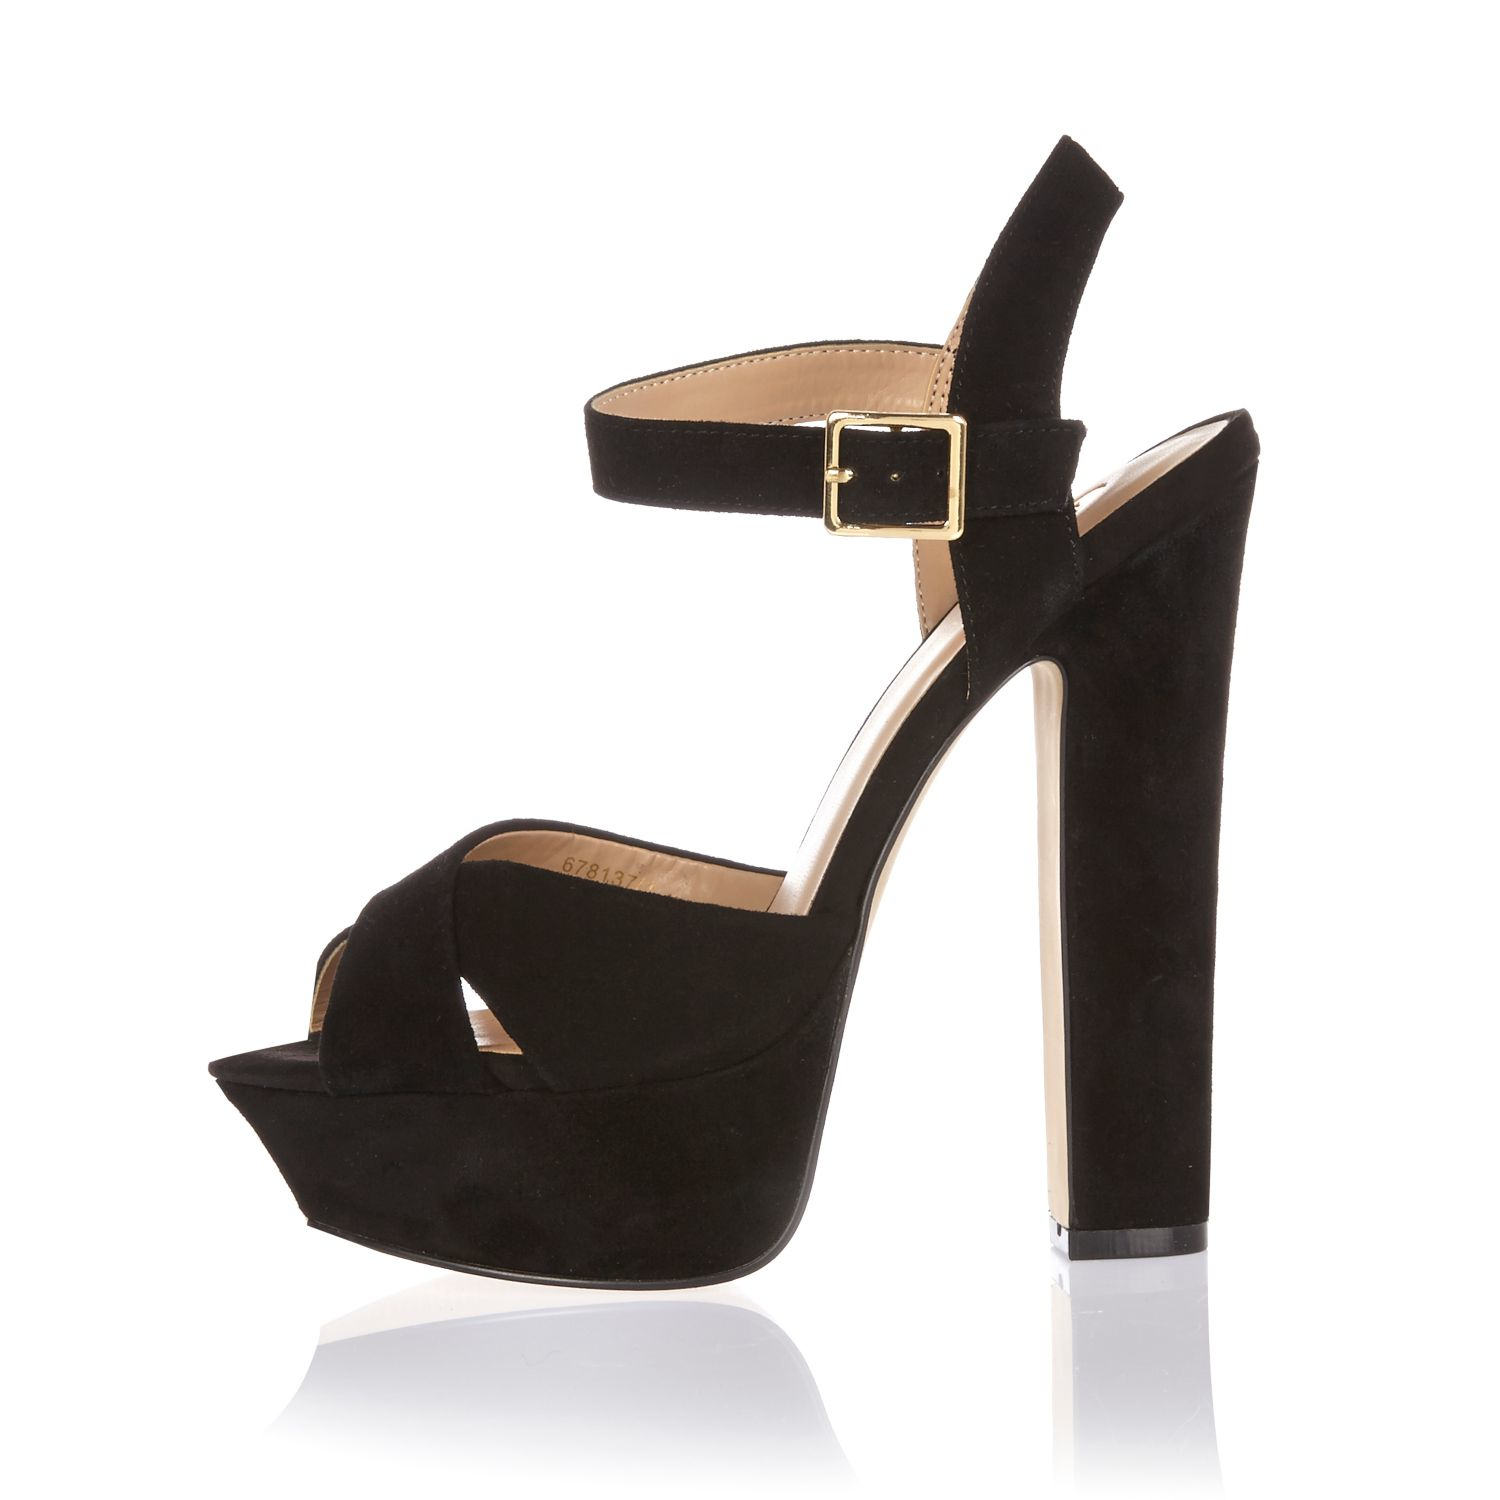 River island Black Suede Platform Heels in Black | Lyst